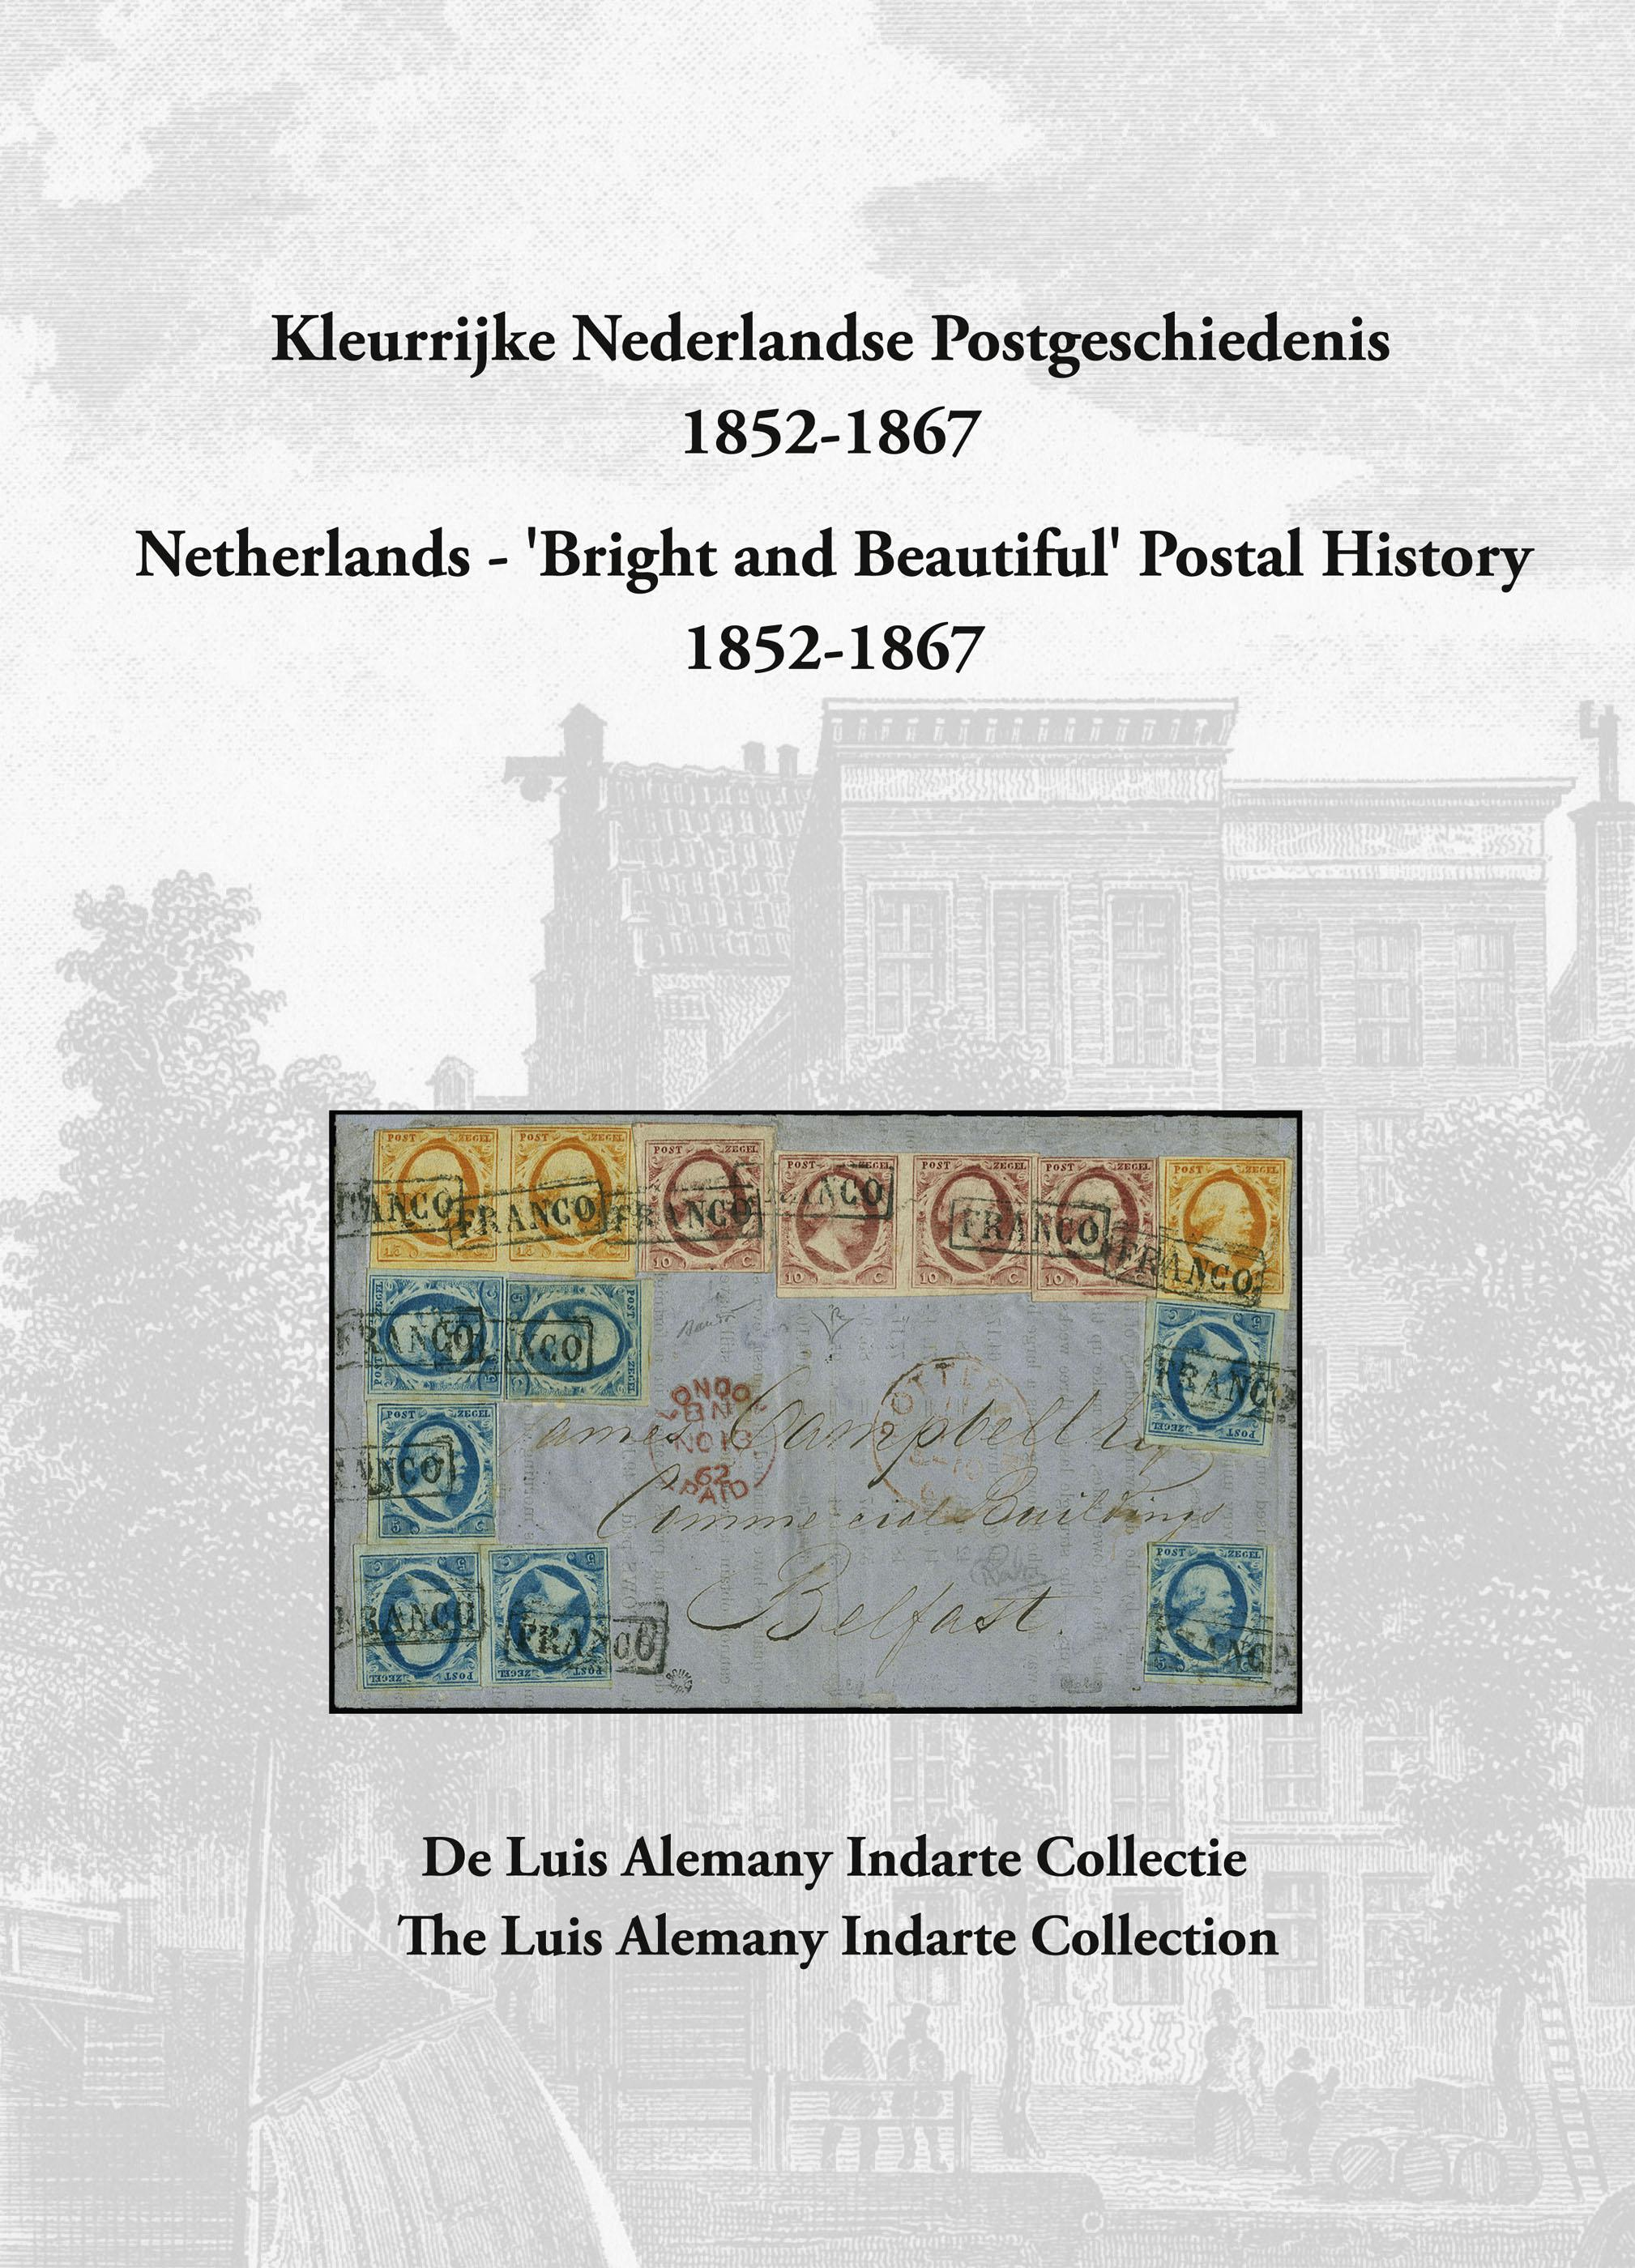 EDITION SPÉCIALE • Netherlands - 'Bright and Beautiful' Postal History 1852-1867 • The Luis Alemany Indarte Collection